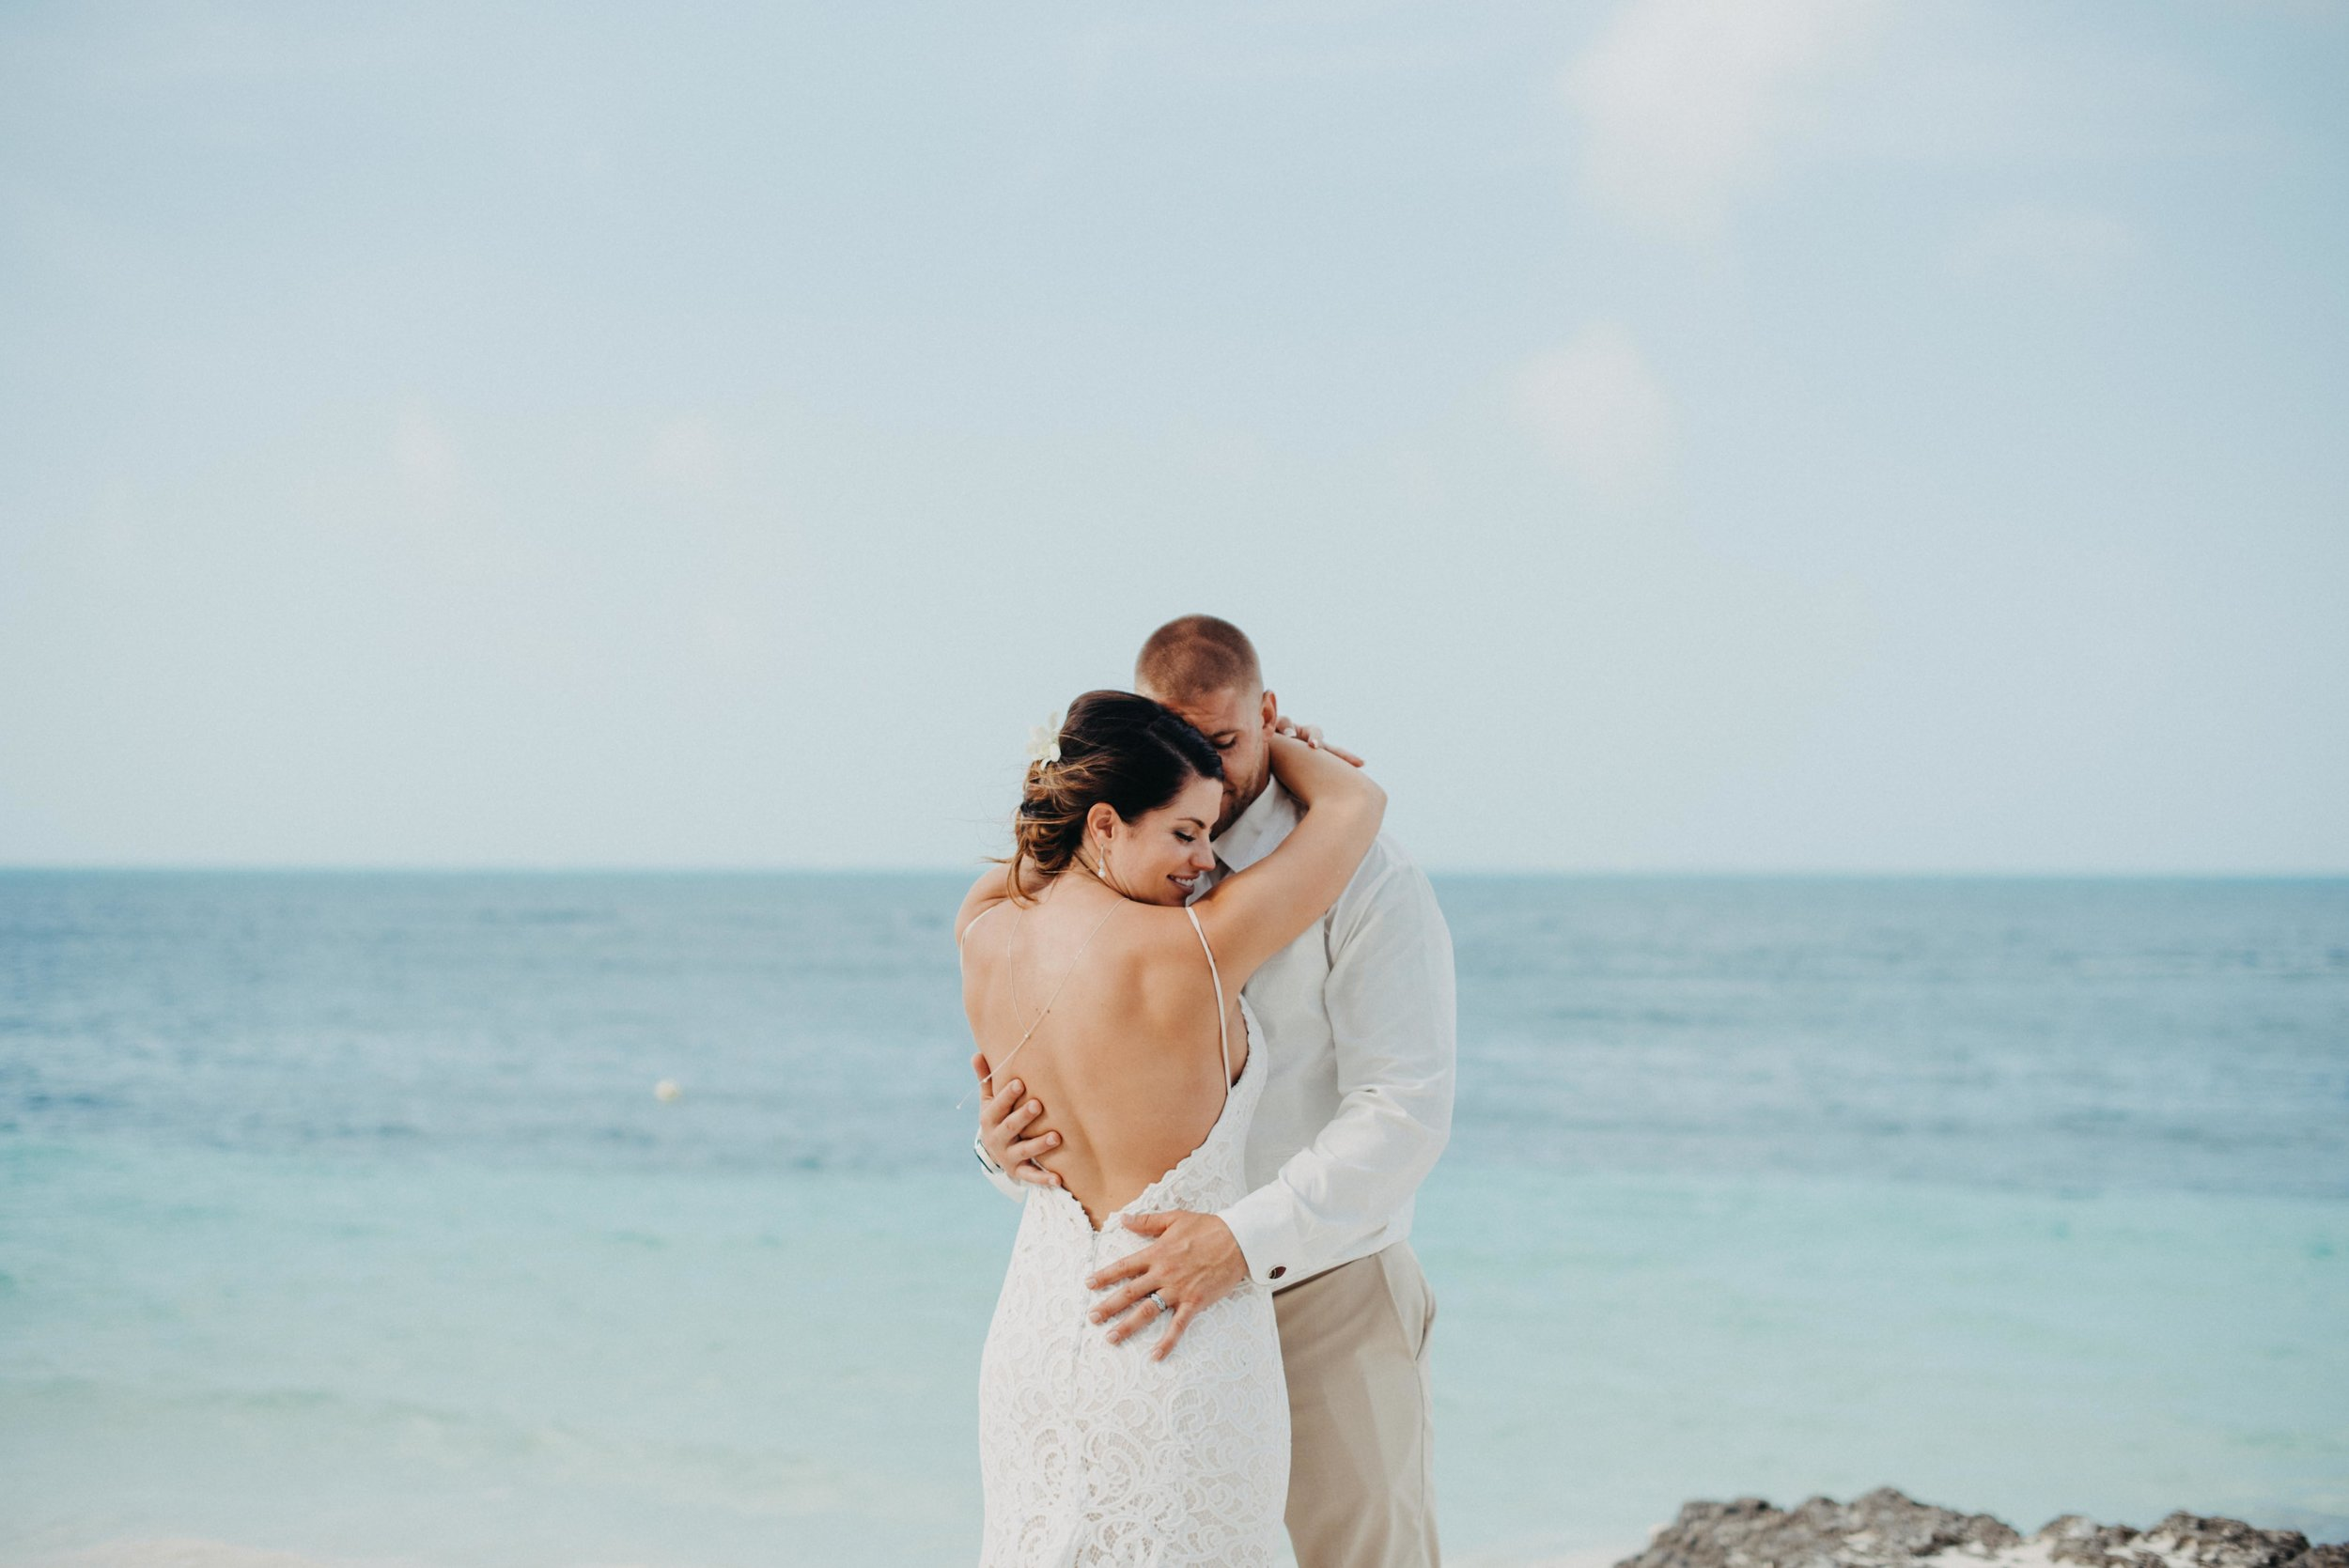 Beach-Wedding-Photography-Cancun-Elopement-Destination-Elopement-Photography-Destination-Beach-Wedding-+Costa-Rica-Wedding-Photography-Beach-Wedding-Photos-teresawoodhull-Cancun-Elopement-Beach-Wedding-+Sunset-Beach-Wedding-Fotografia-de-bodas-Nicoya-Peninsula-Elopement-Photographer-Santa-Teresa-Elopement-Photographer-Adventure-elopement-photographer-Santa-Teresa-Wedding-Photographer-Adventure-Wedding-Boda-playa-santa-teresa-Adventure-Wedding-Photography-Adventure-Wedding-Photographer-Beach-Elopement-Beach-Elopement-Photos-maddie-mae-Beach-Elopement-Photographer-Destination-Elopement-Photographer-Sunset-Beach-Elopement-Mexico-wedding-photographer-cabo-wedding-photographer-mexico-wedding-mexico-destination-wedding-cancun-destination-wedding-cancun-elopement-photographer-playa-del-carmen-wedding-playa-del-carmen-destination-wedding-photographer-playa-del-carmen-wedding-photography-Nicoya-Peninsula-Wedding-Photography-Nicoya-Peninsula-Wedding-Photographer-Nicoya-Peninsula-Elopement-Photography-riu-wedding-julia-tony-destination-elopement-010